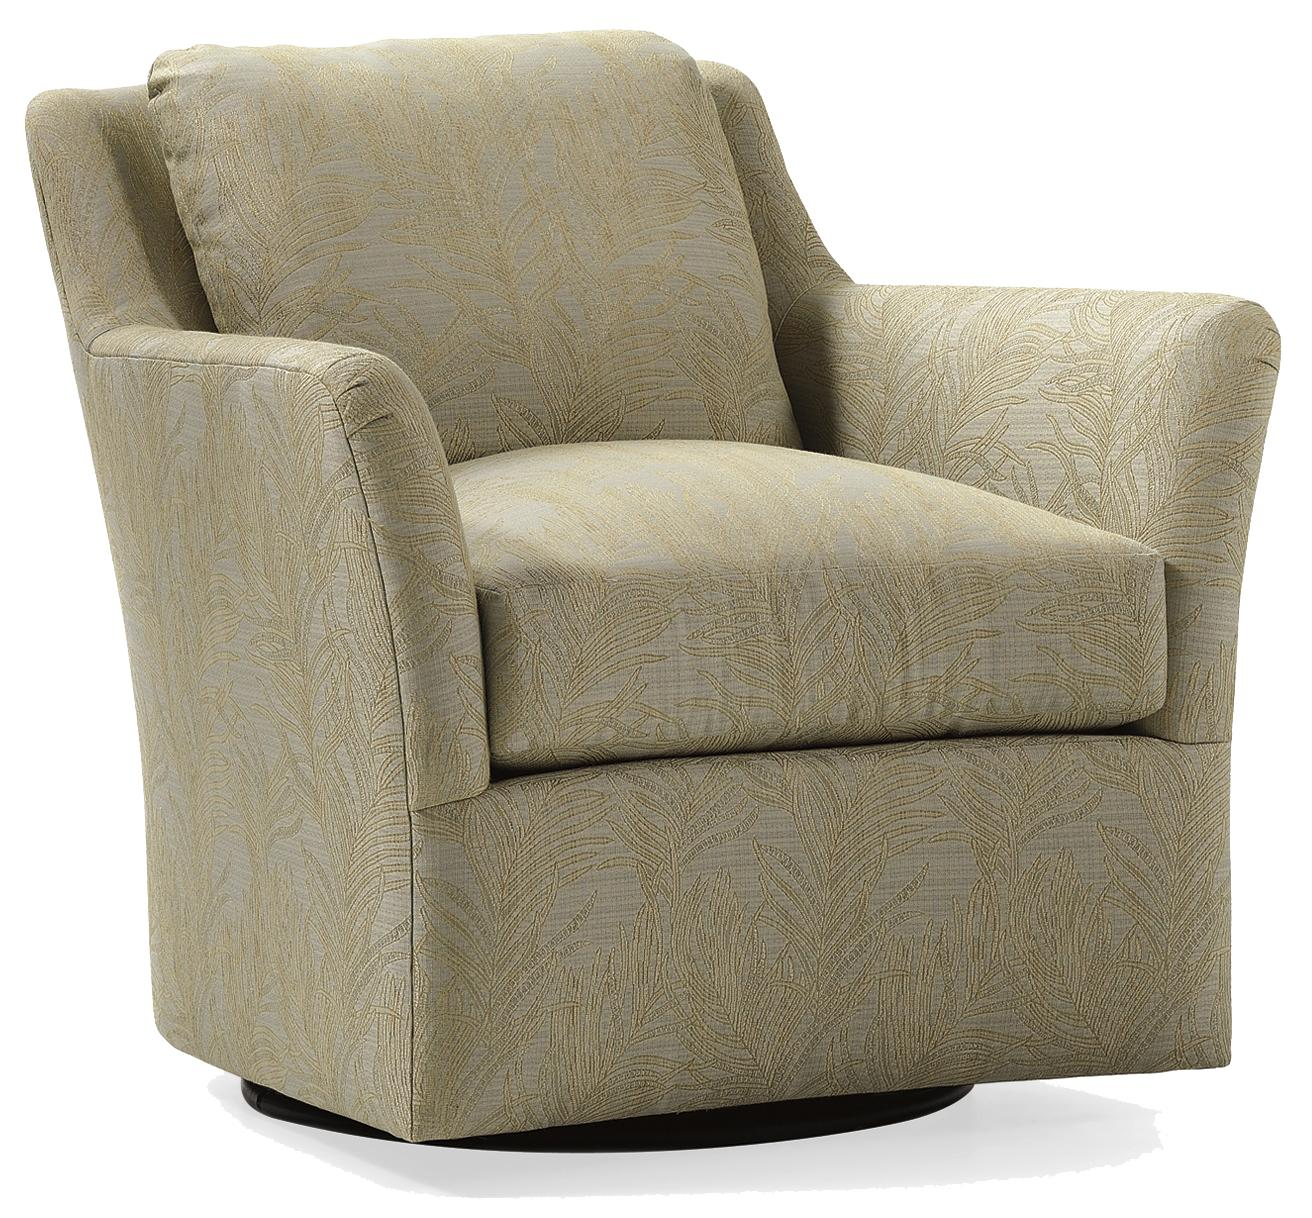 Jessica Charles Swivel Chairs Jessica Charles Fine Upholstered Accents Addison